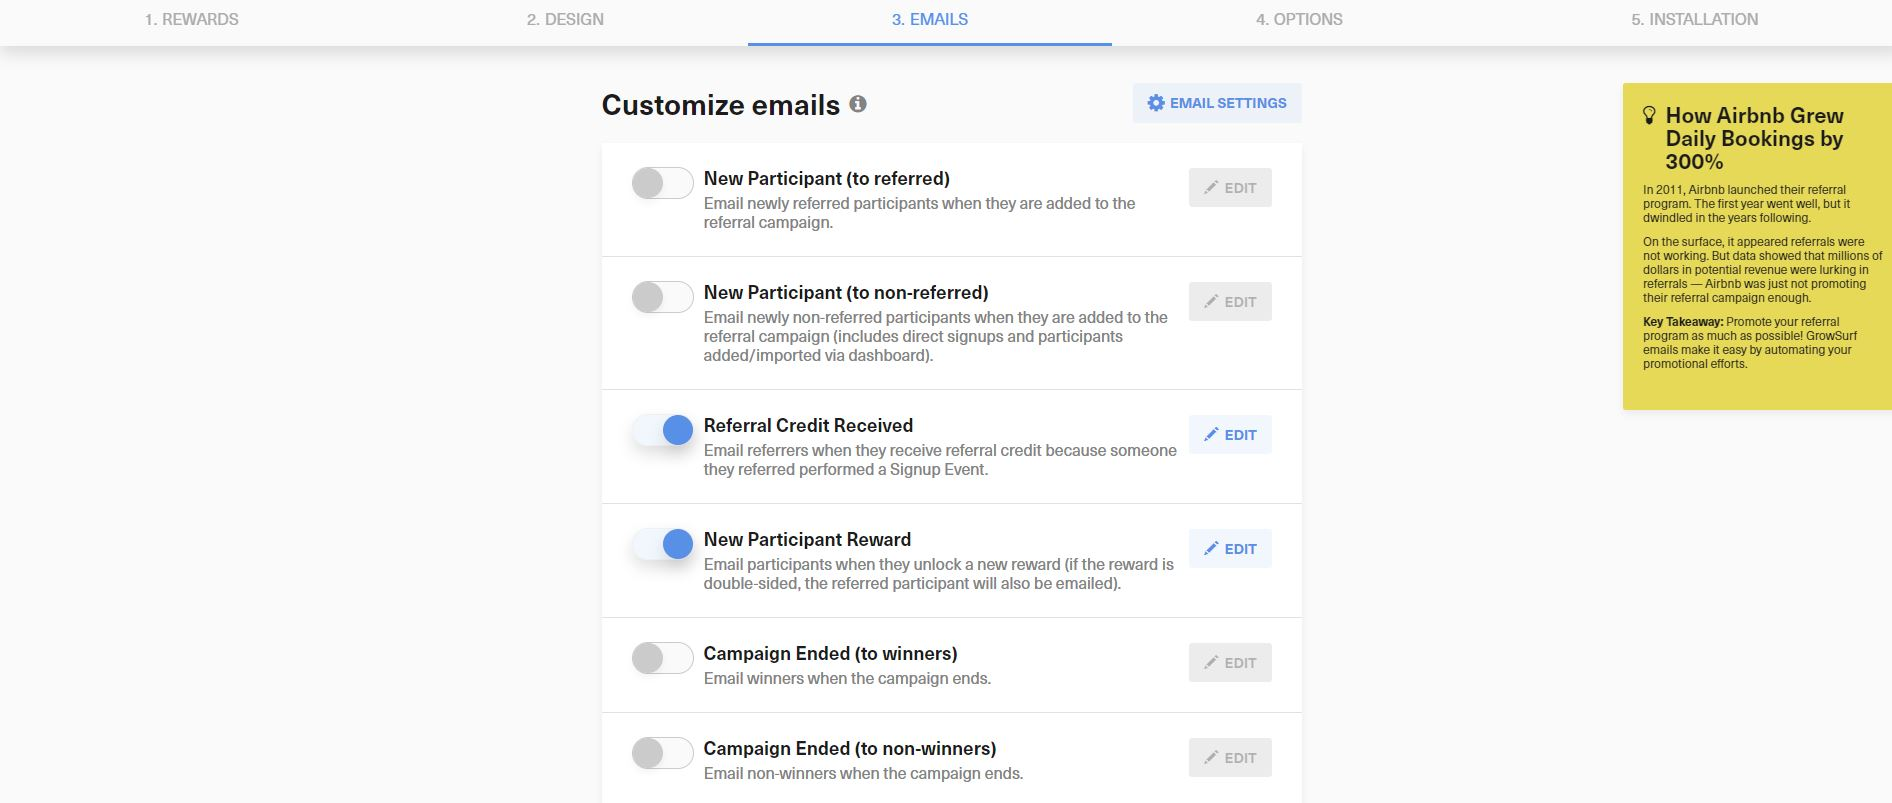 GrowthSurf email settings